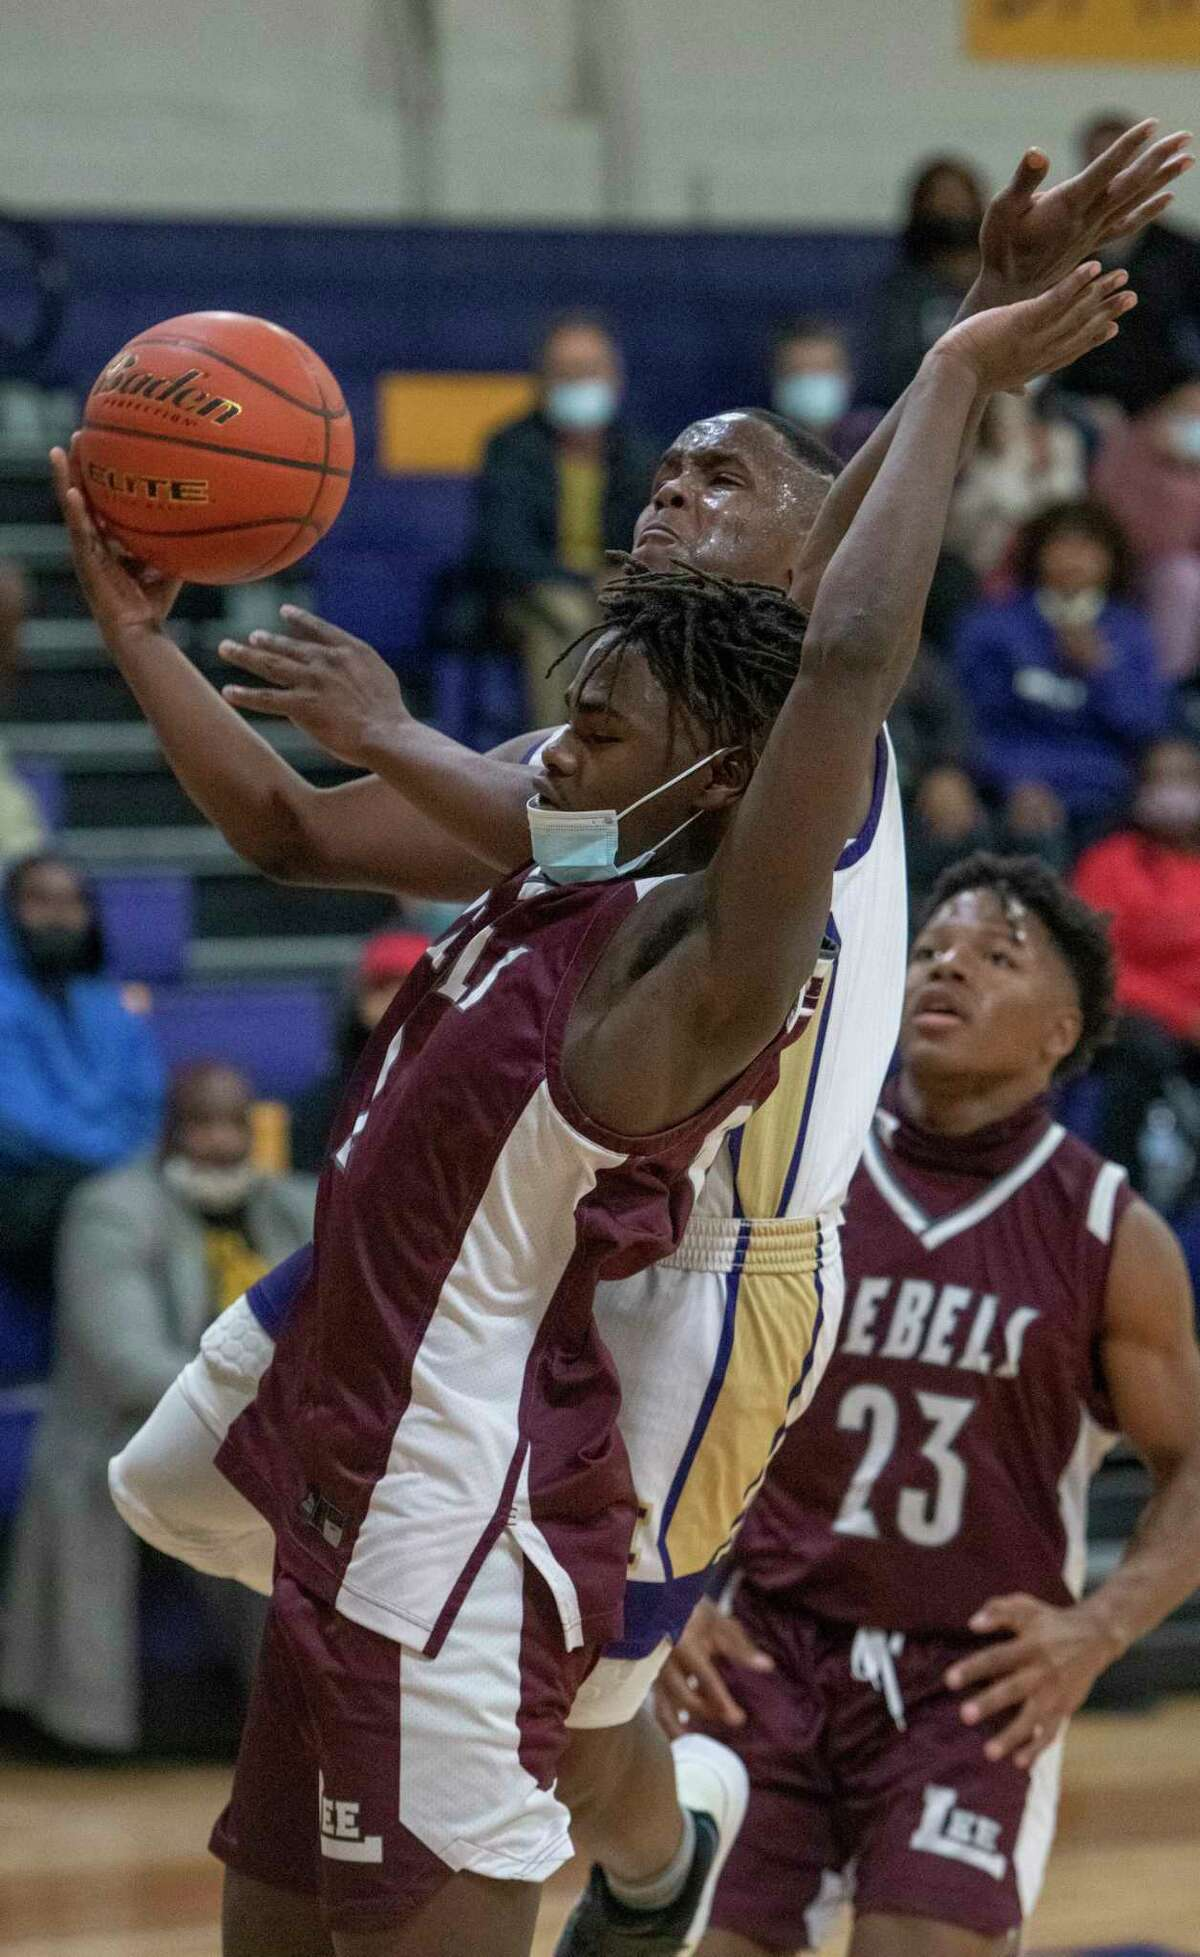 Lee High's Addison Akbar is called for a foul as Midland High's Da'Vion Mosley drives to the basket 01/05/2021 at the Midland High gym. Tim Fischer/Reporter-Telegram